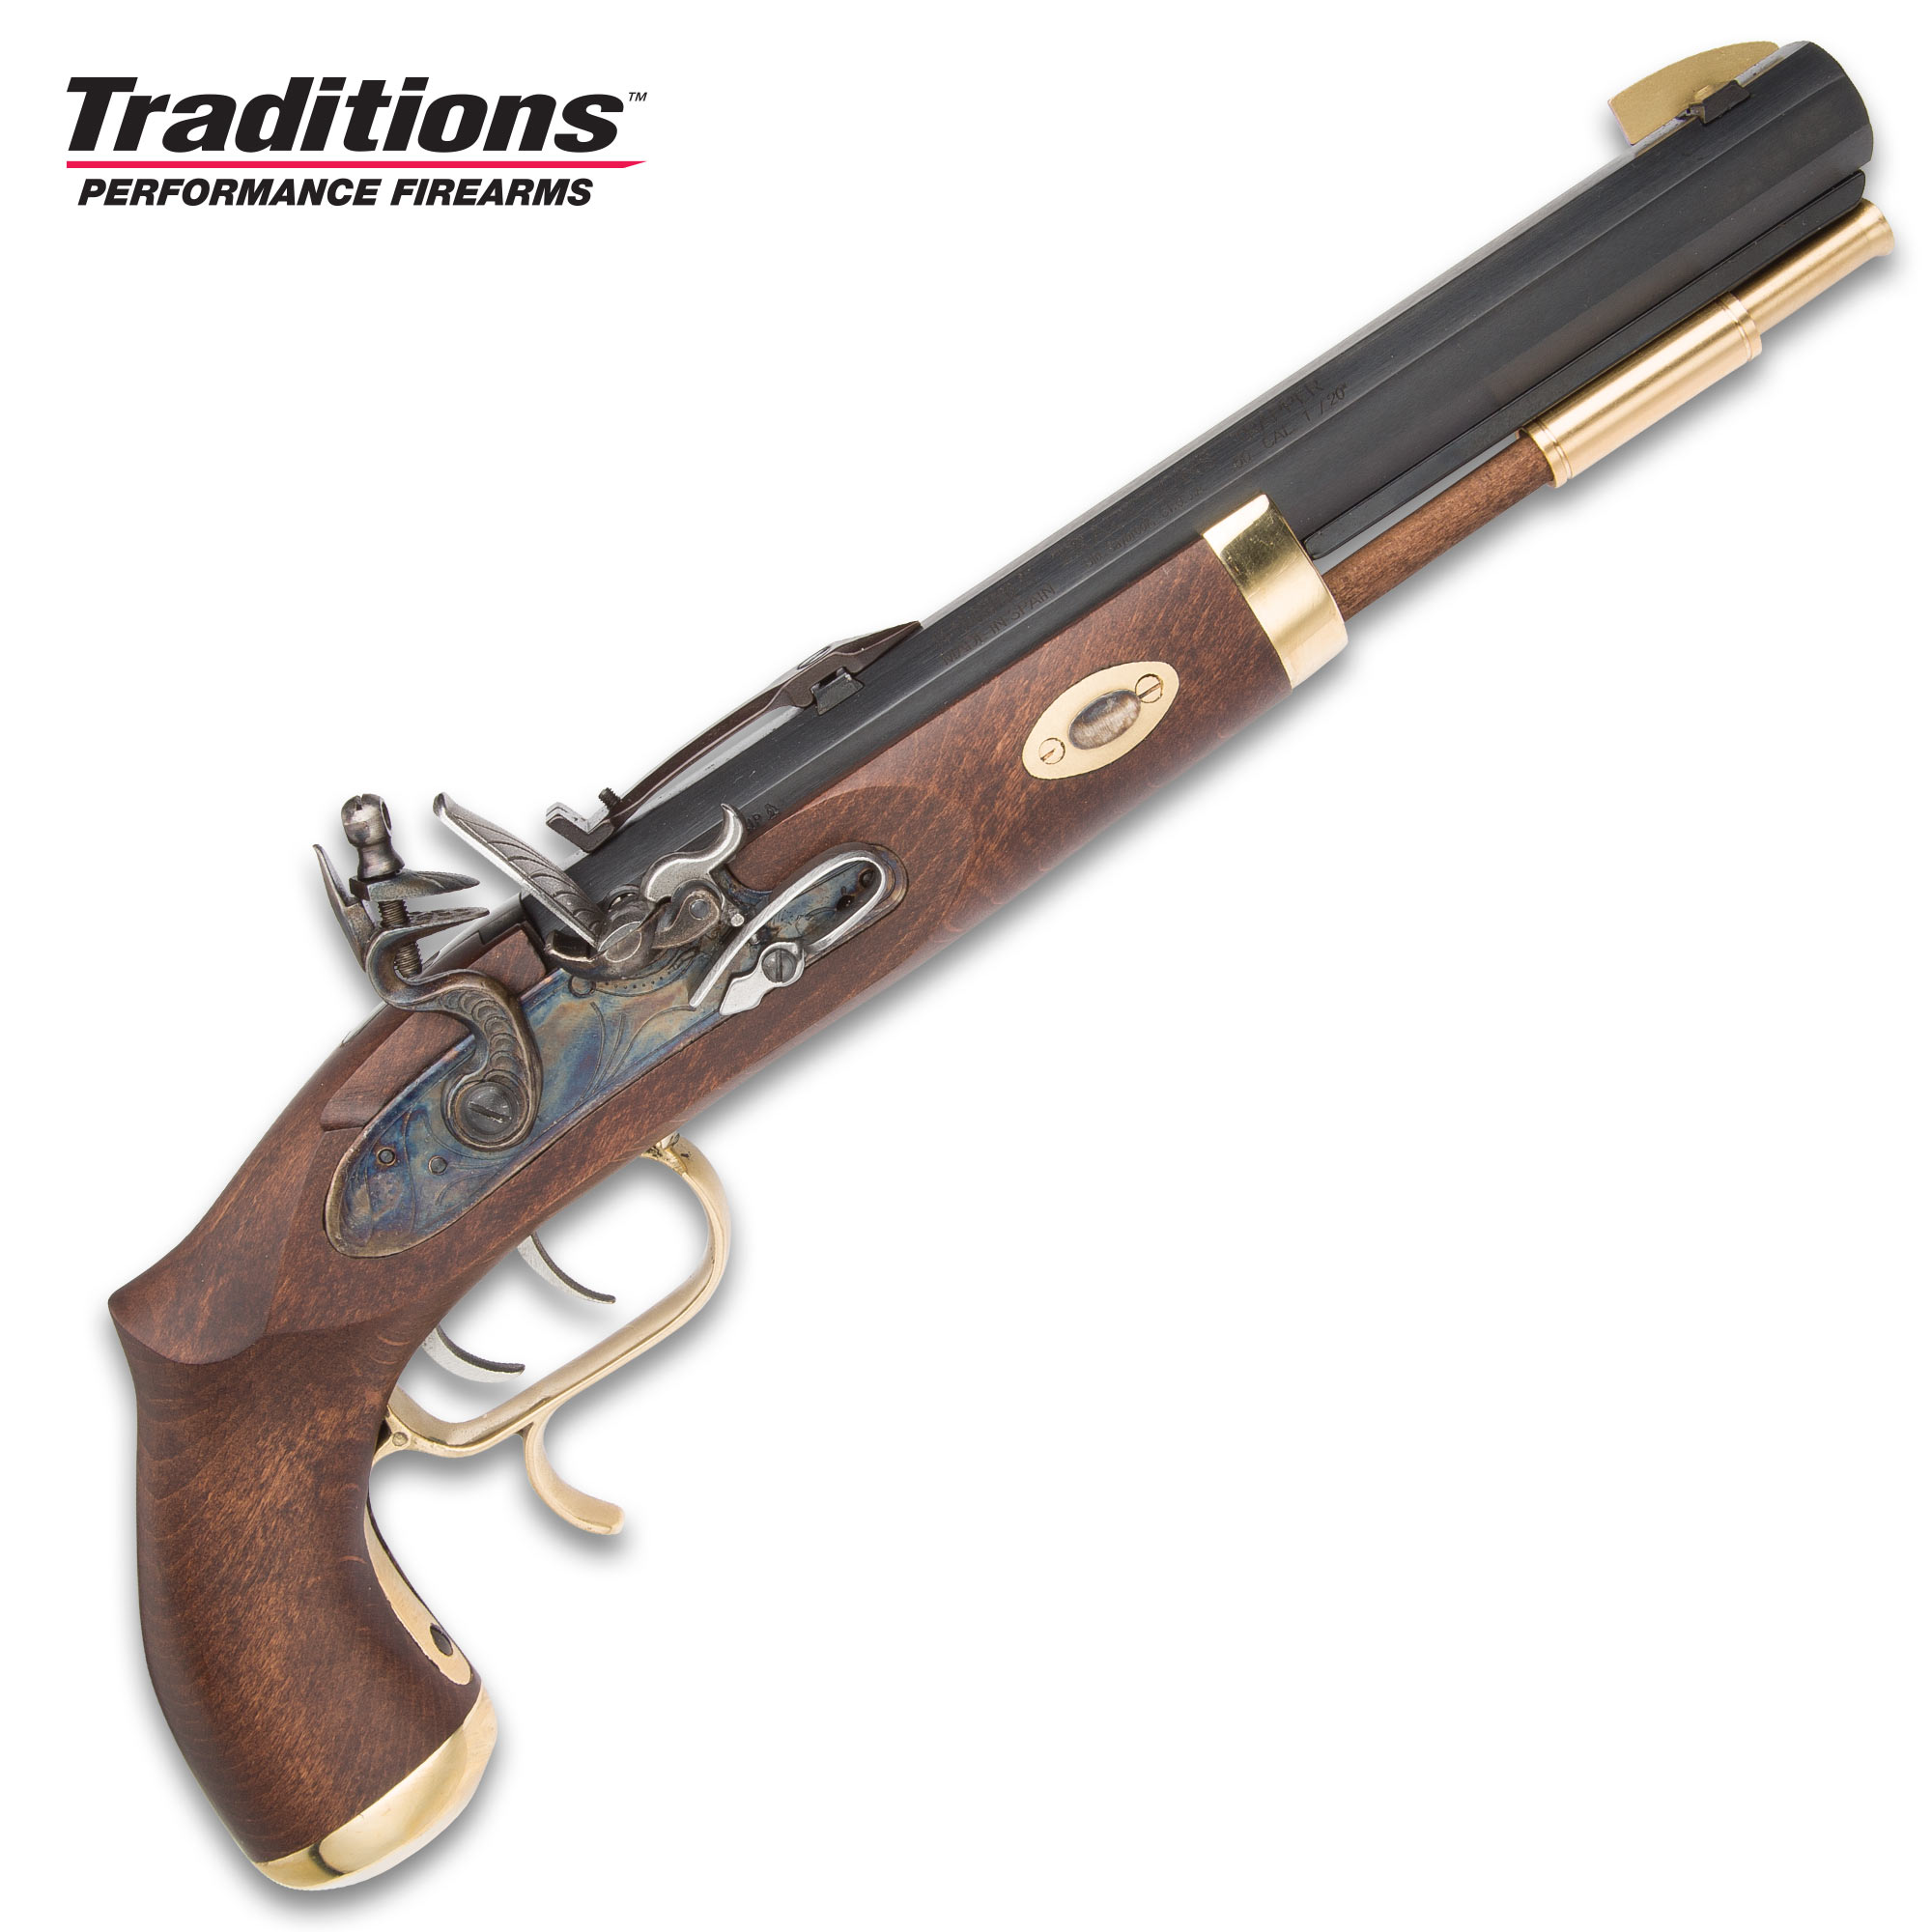 Trapper Classic Muzzleloading Flintlock Pistol - Blued Barrel